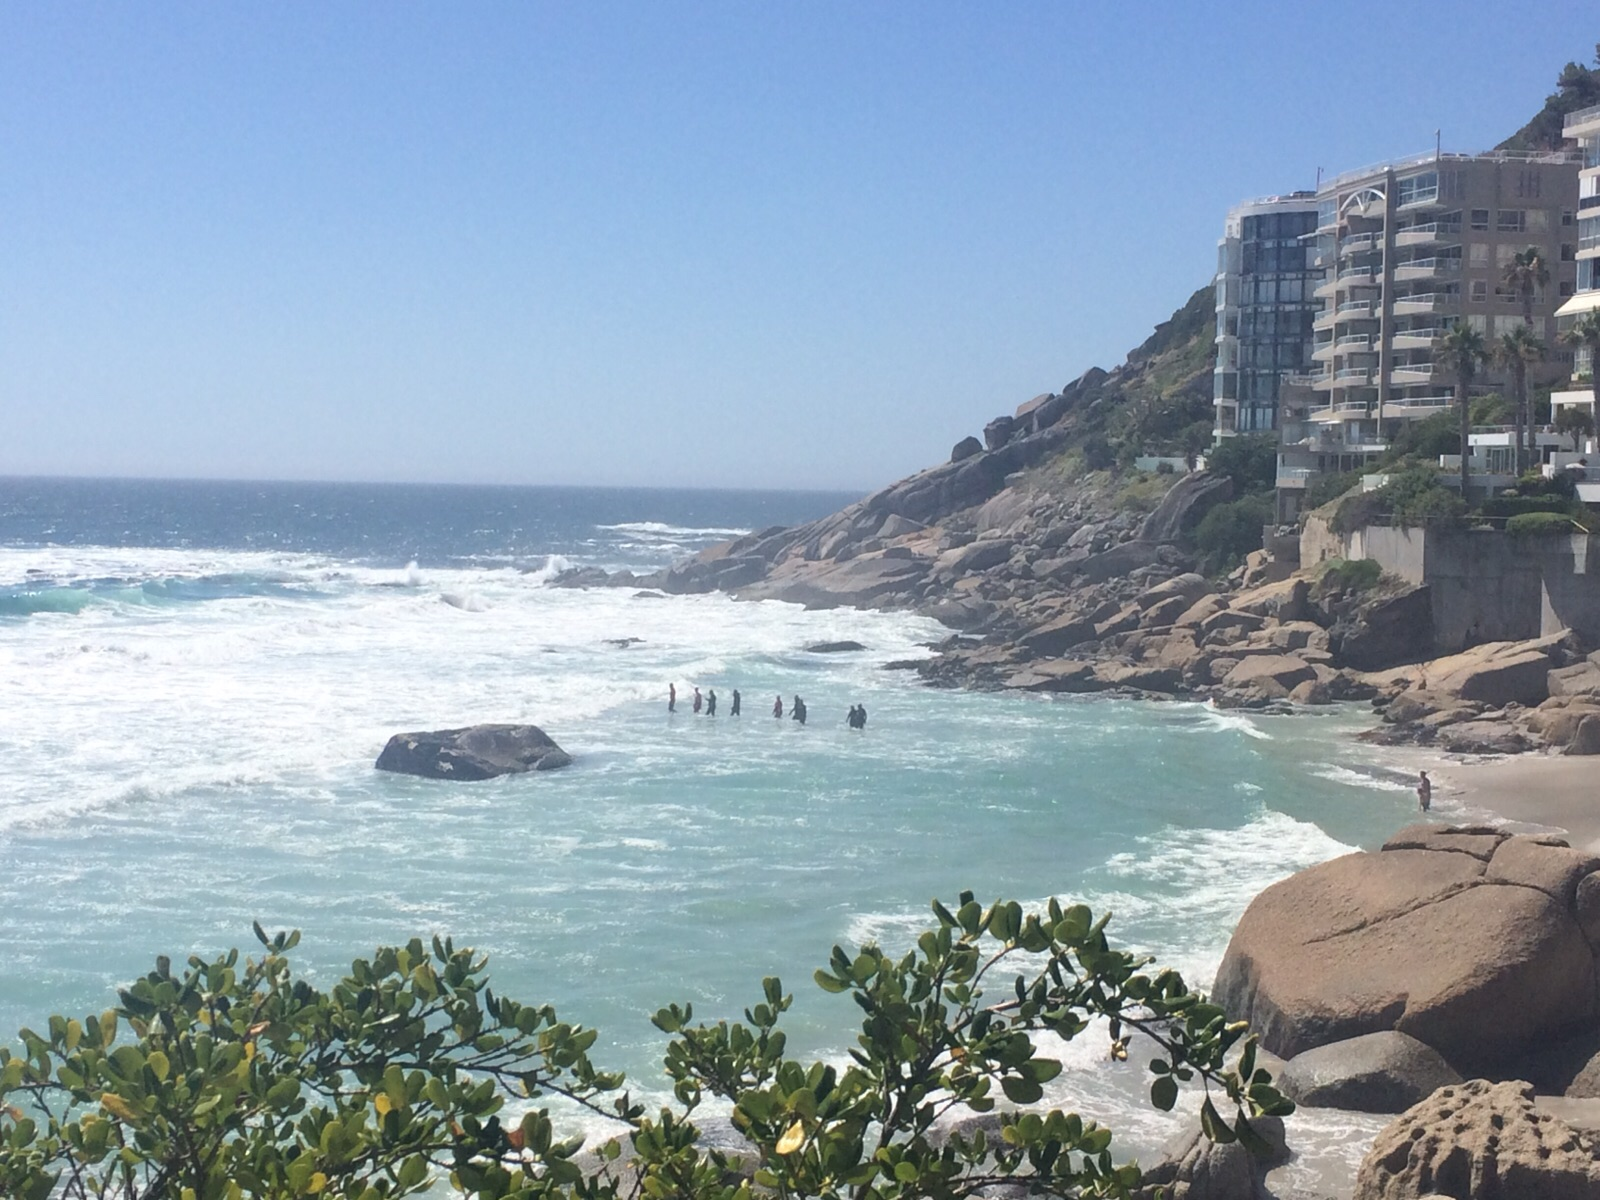 Rescuers search for the missing boy at Clifton.